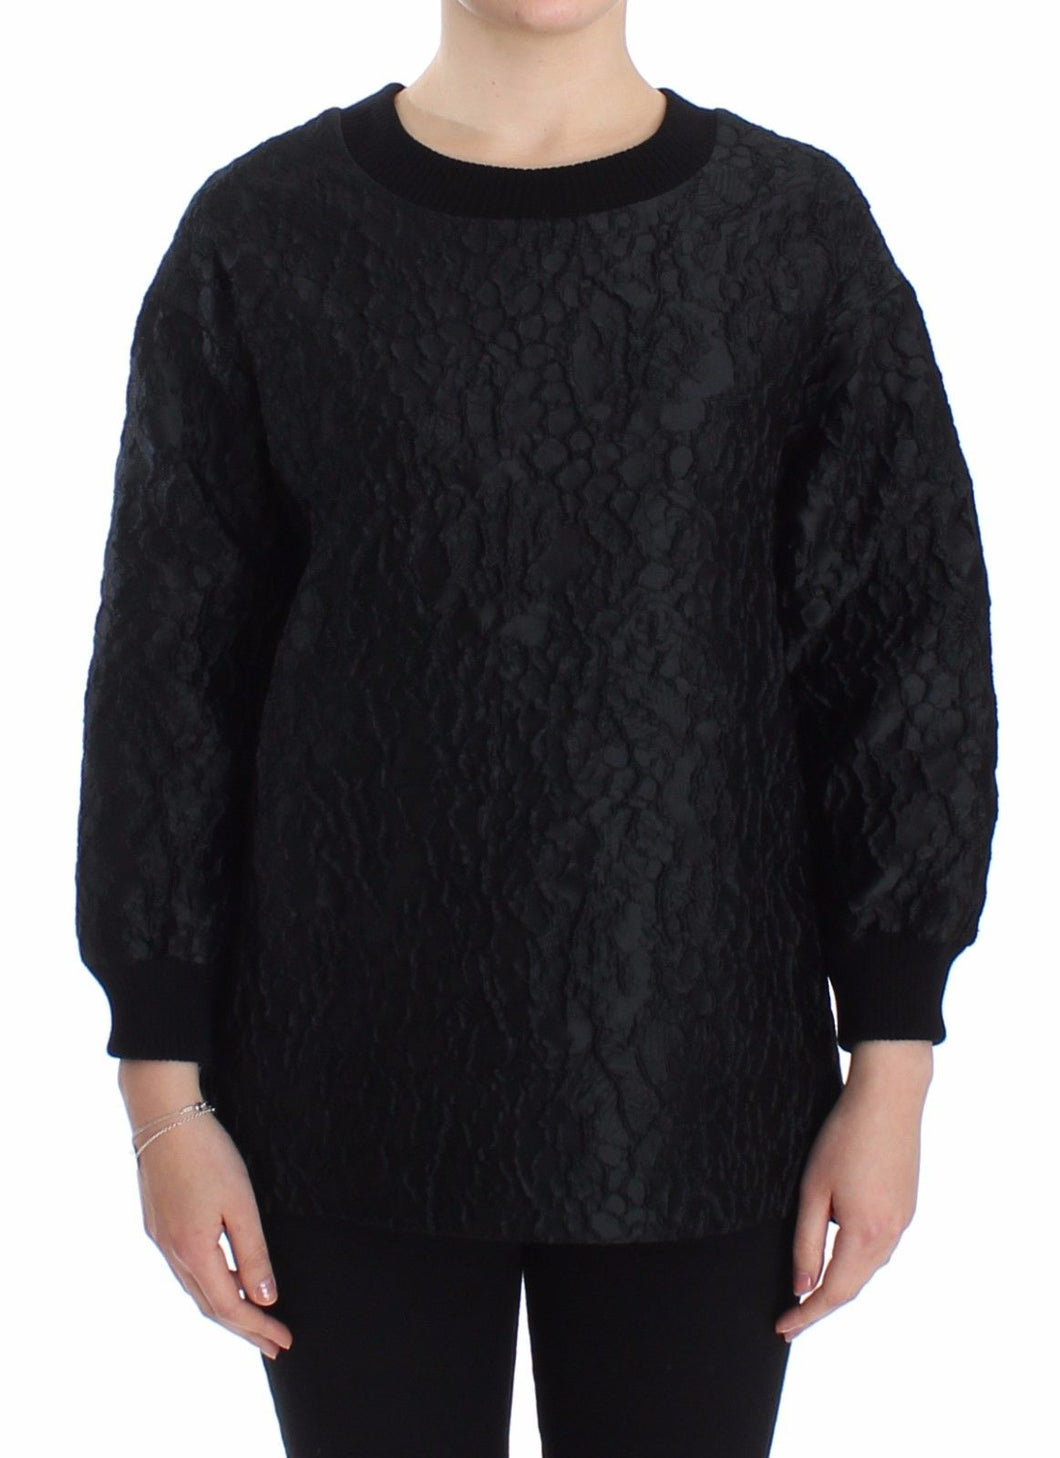 Black Brocade Crewneck Sweater Pullover